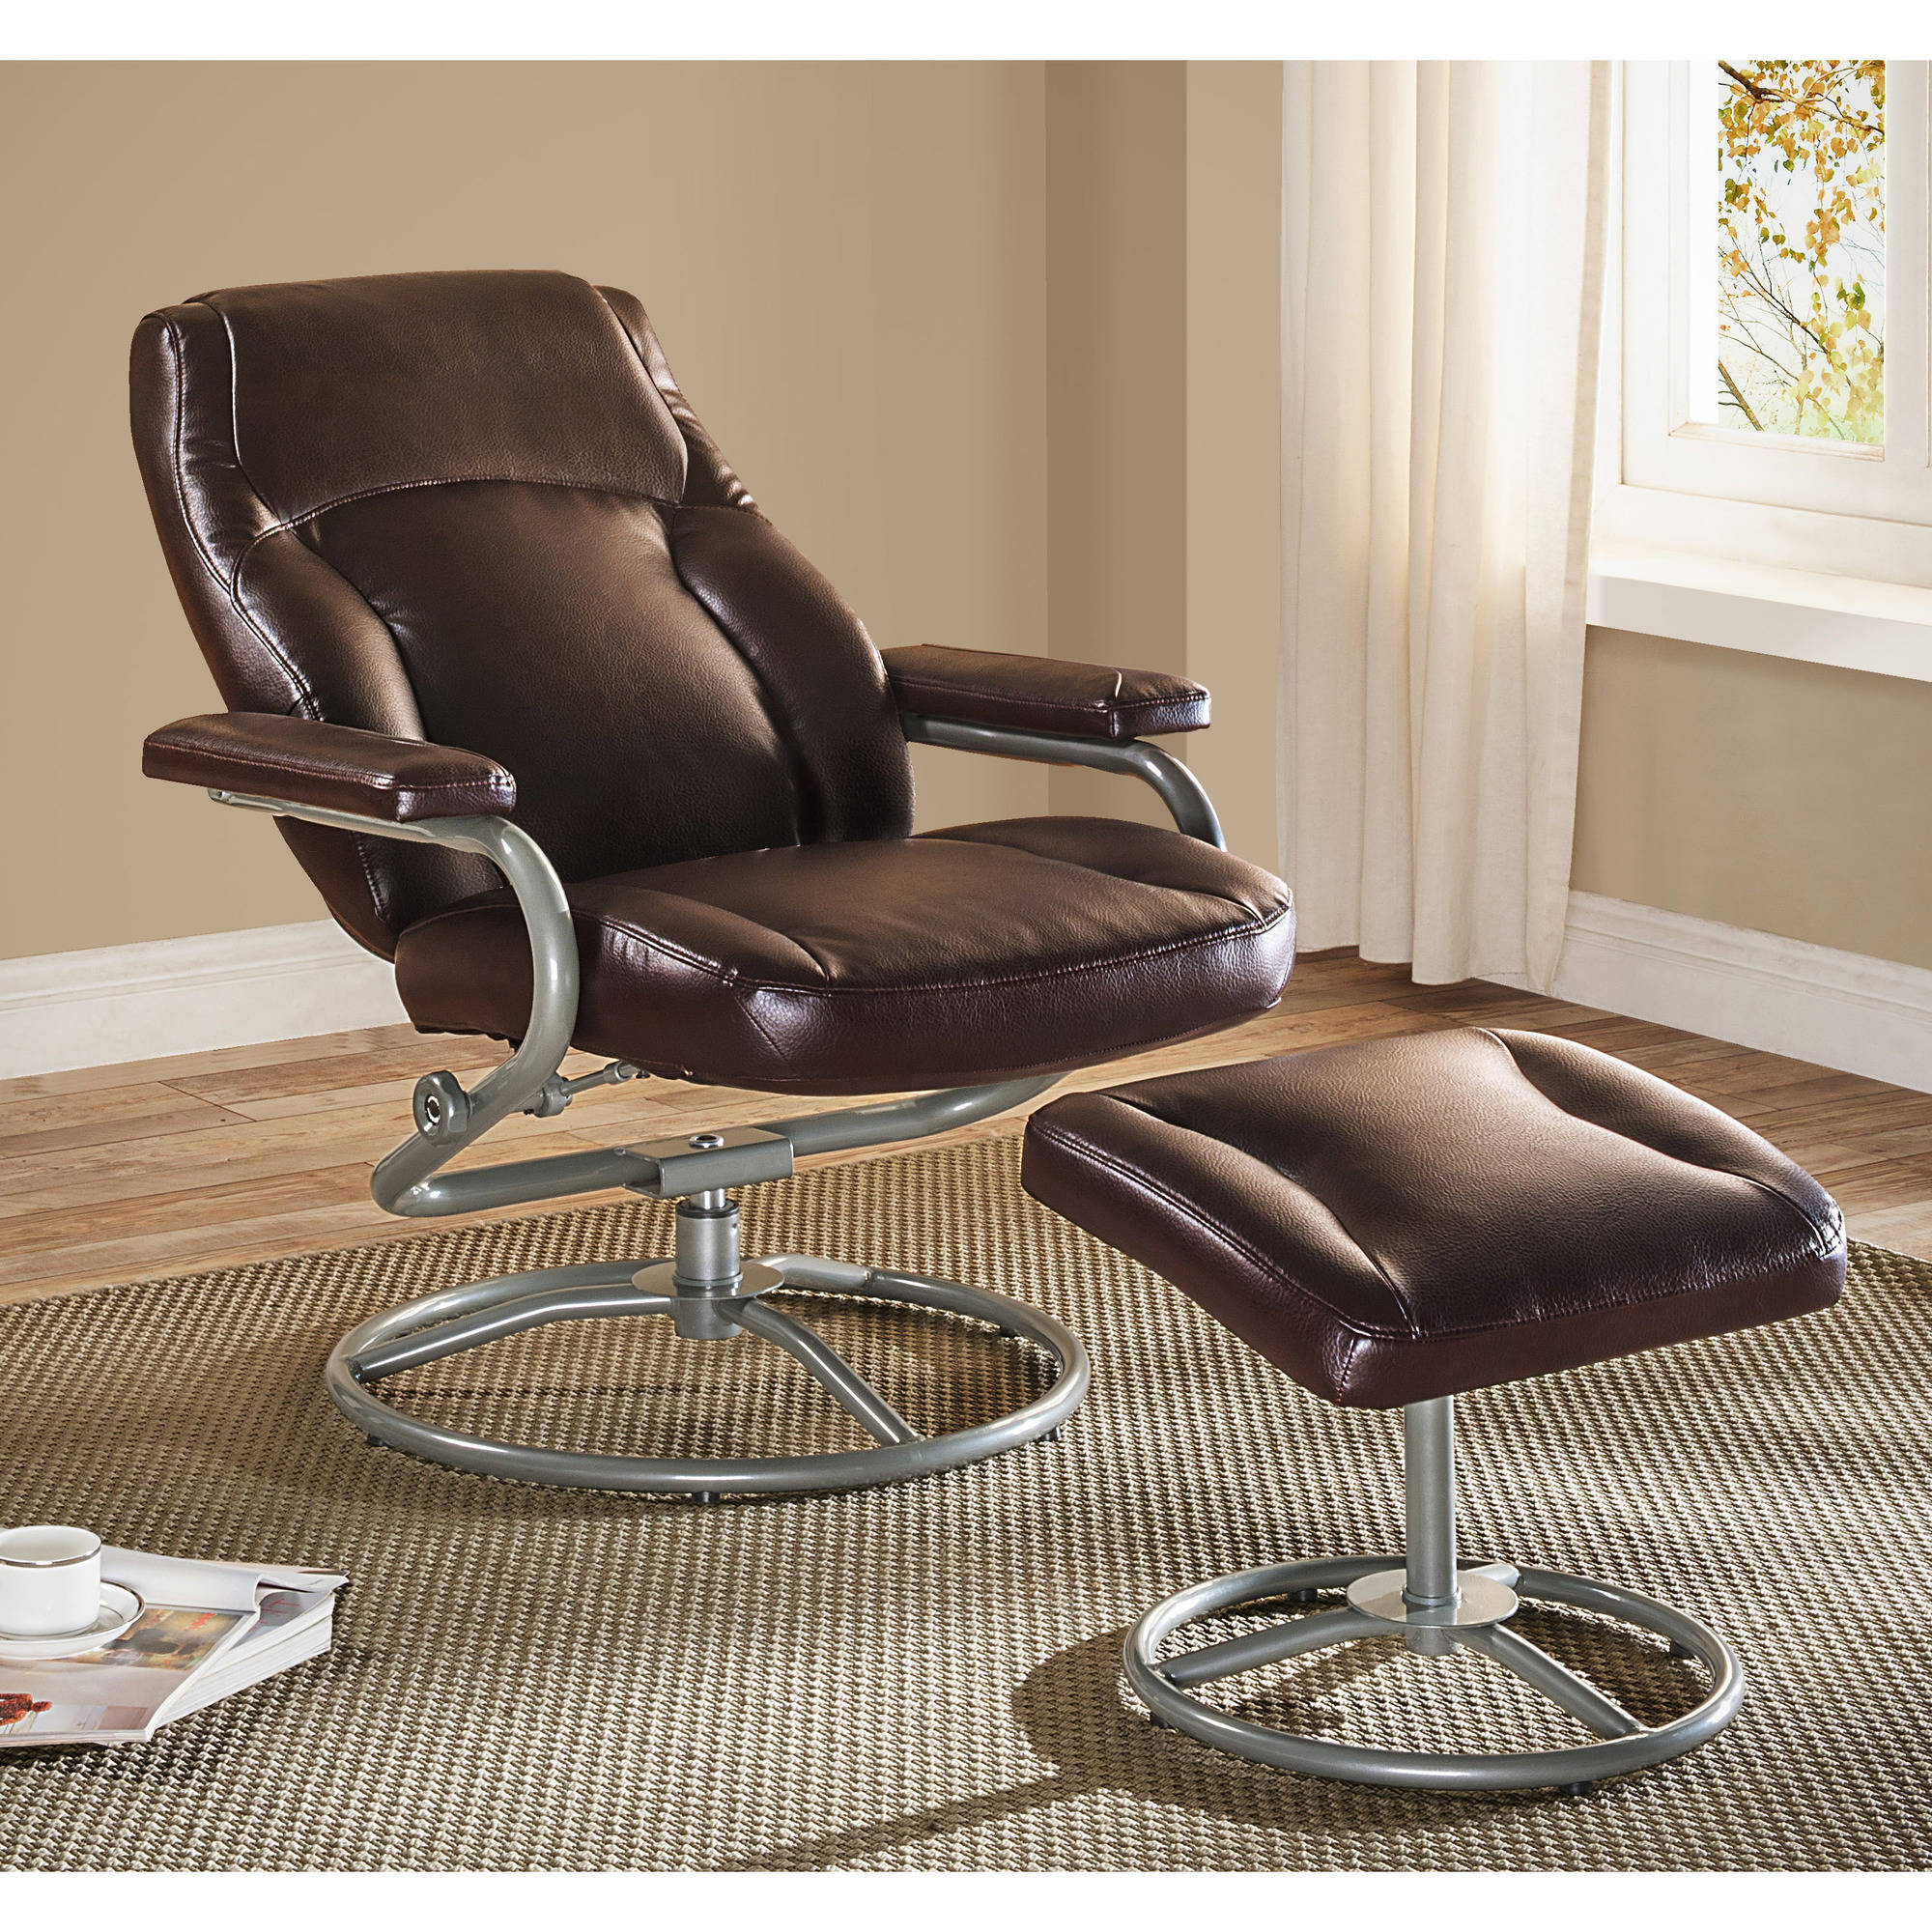 regarding leather recliner ottoman with lane ideas remodel chair simple home on small and